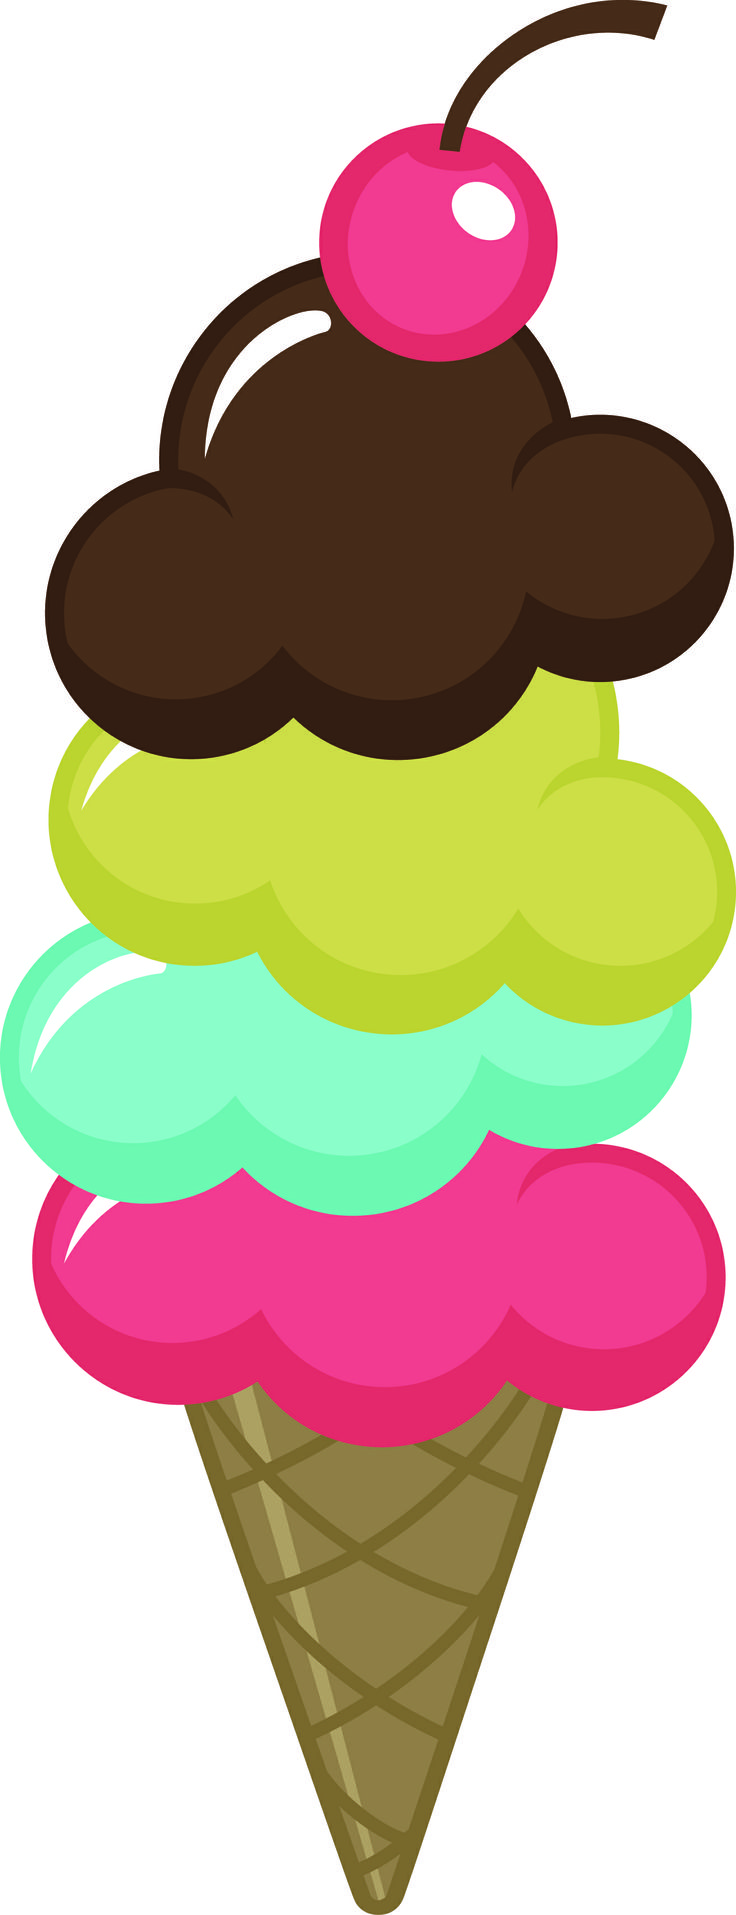 Addition clipart cute.  best images on